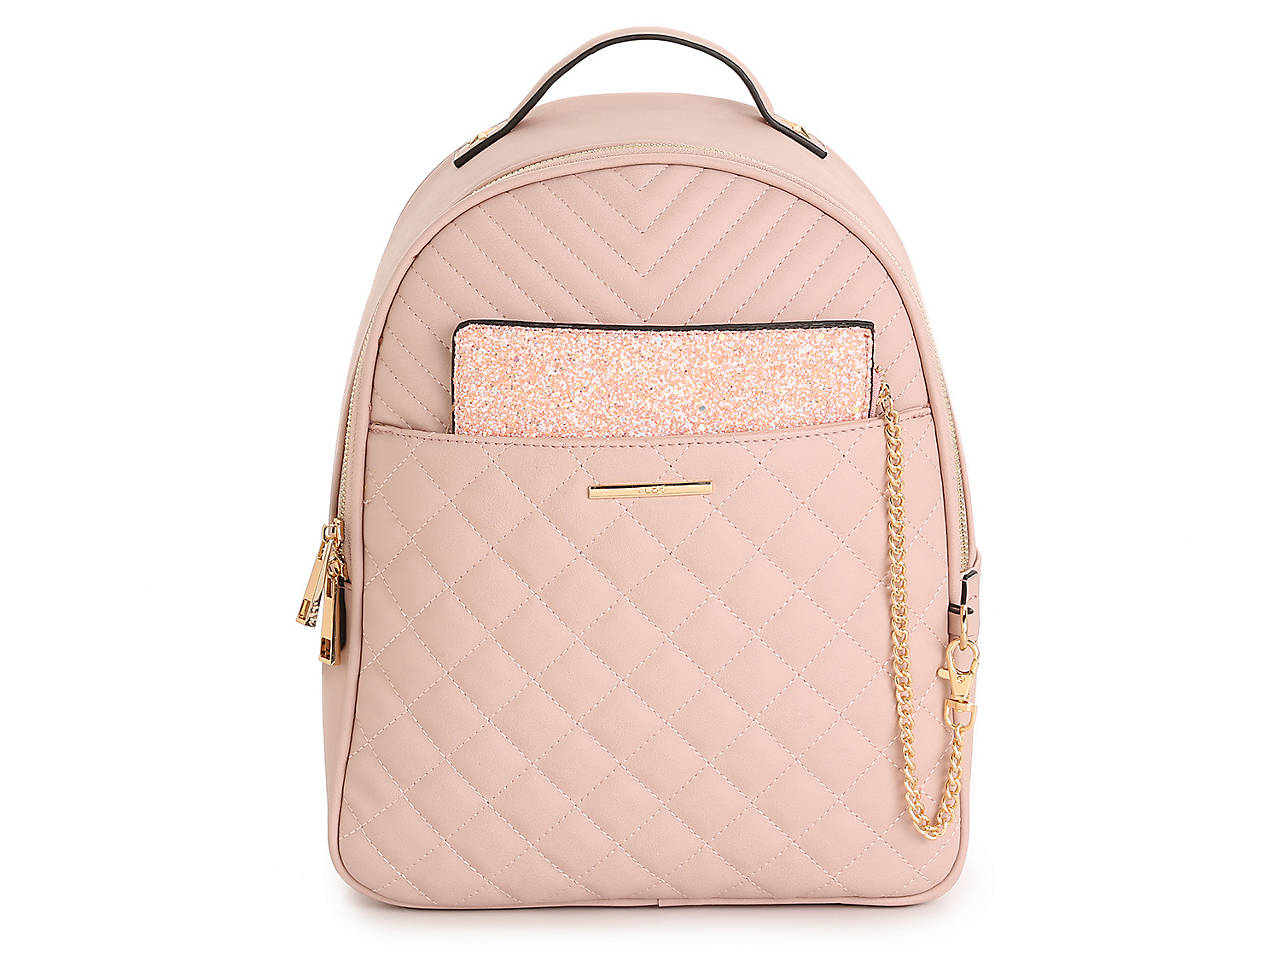 7d364a1097a Aldo Auricelle Backpack Women s Handbags   Accessories